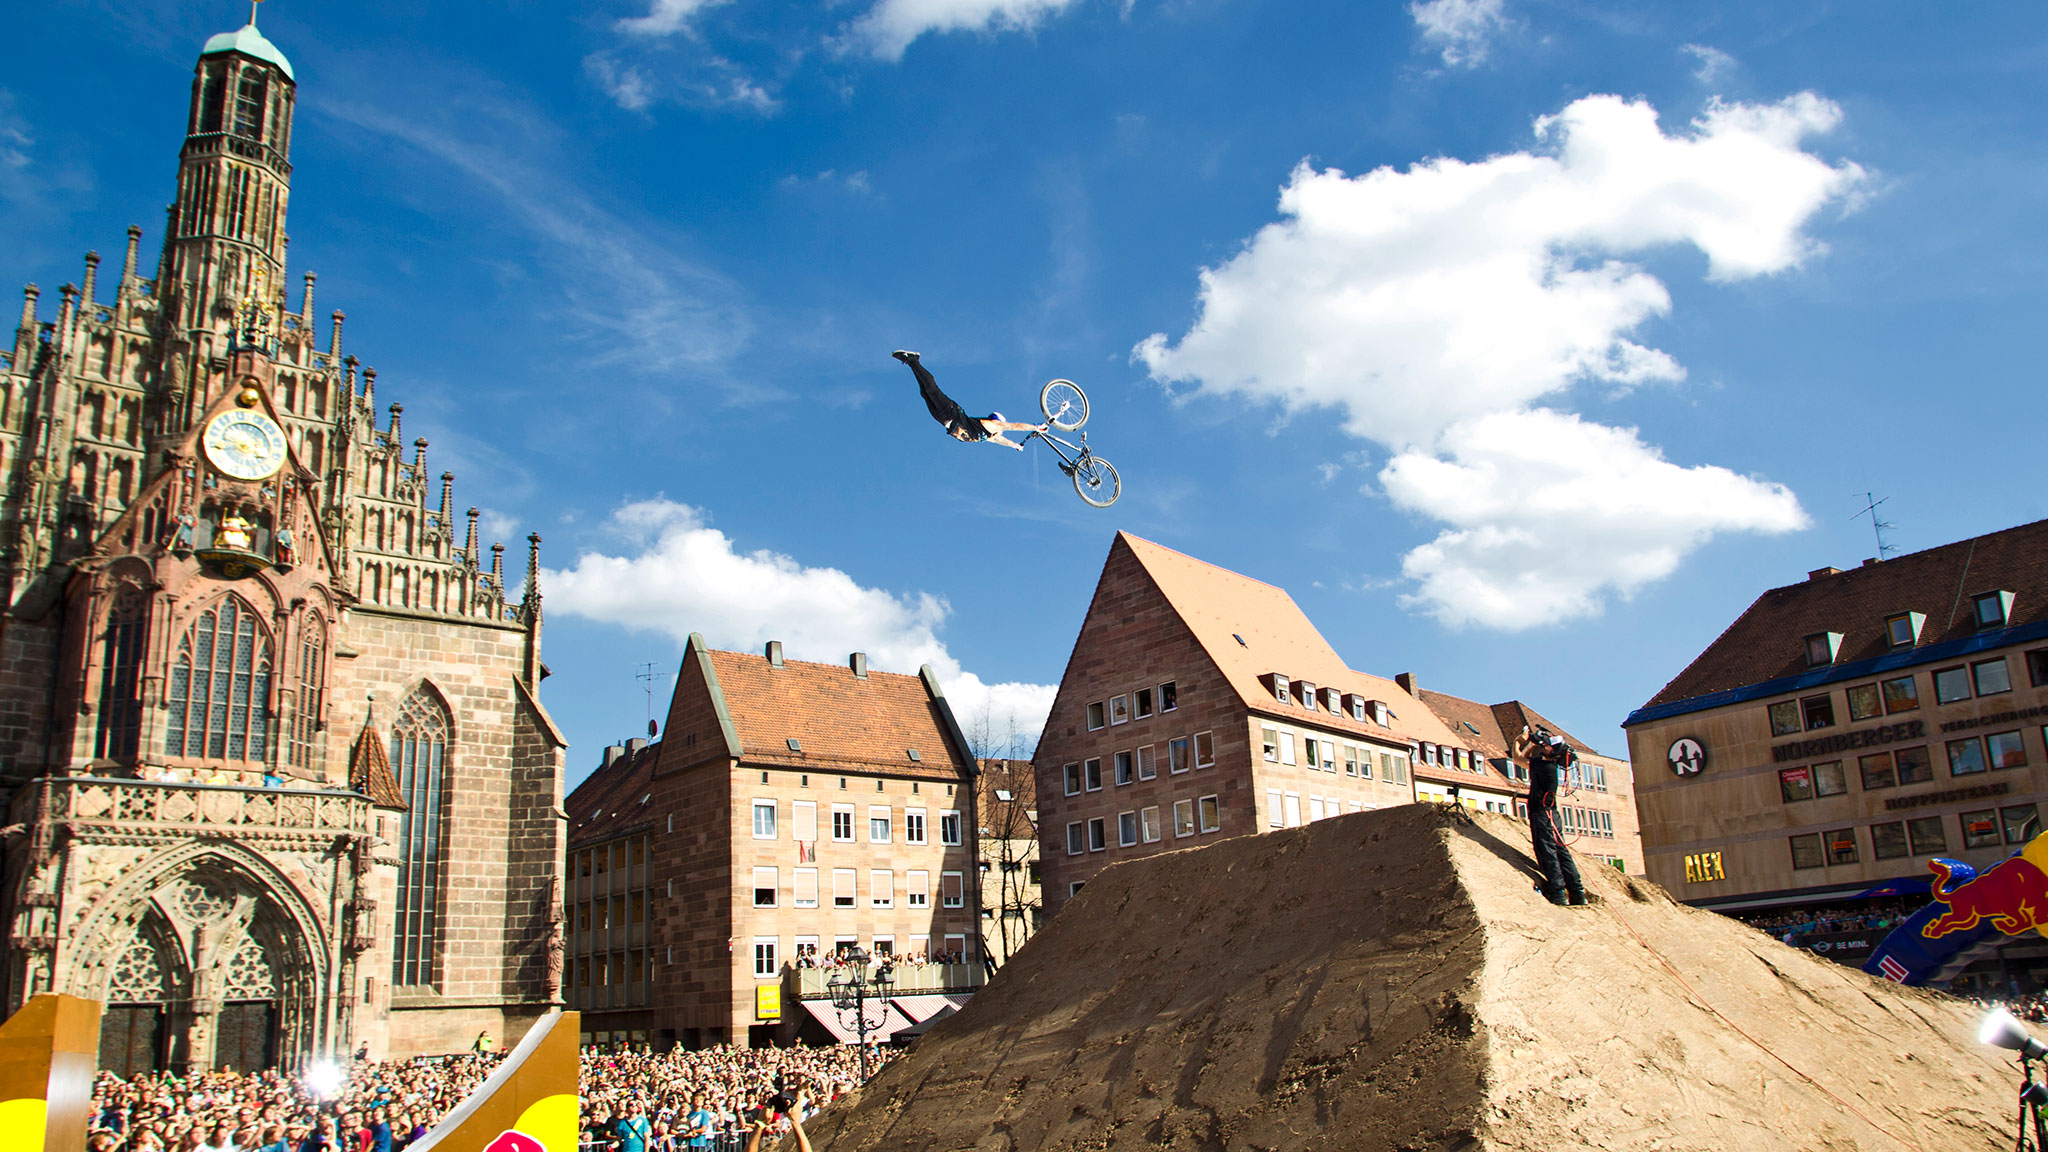 Andreu Lacondeguy does a massive Superman at the Red Bull District Ride in Nuremberg, Germany. He is one of 16 athletes in Munich to compete for the first-ever X Games gold medal in Mountain Bike Slopestyle.